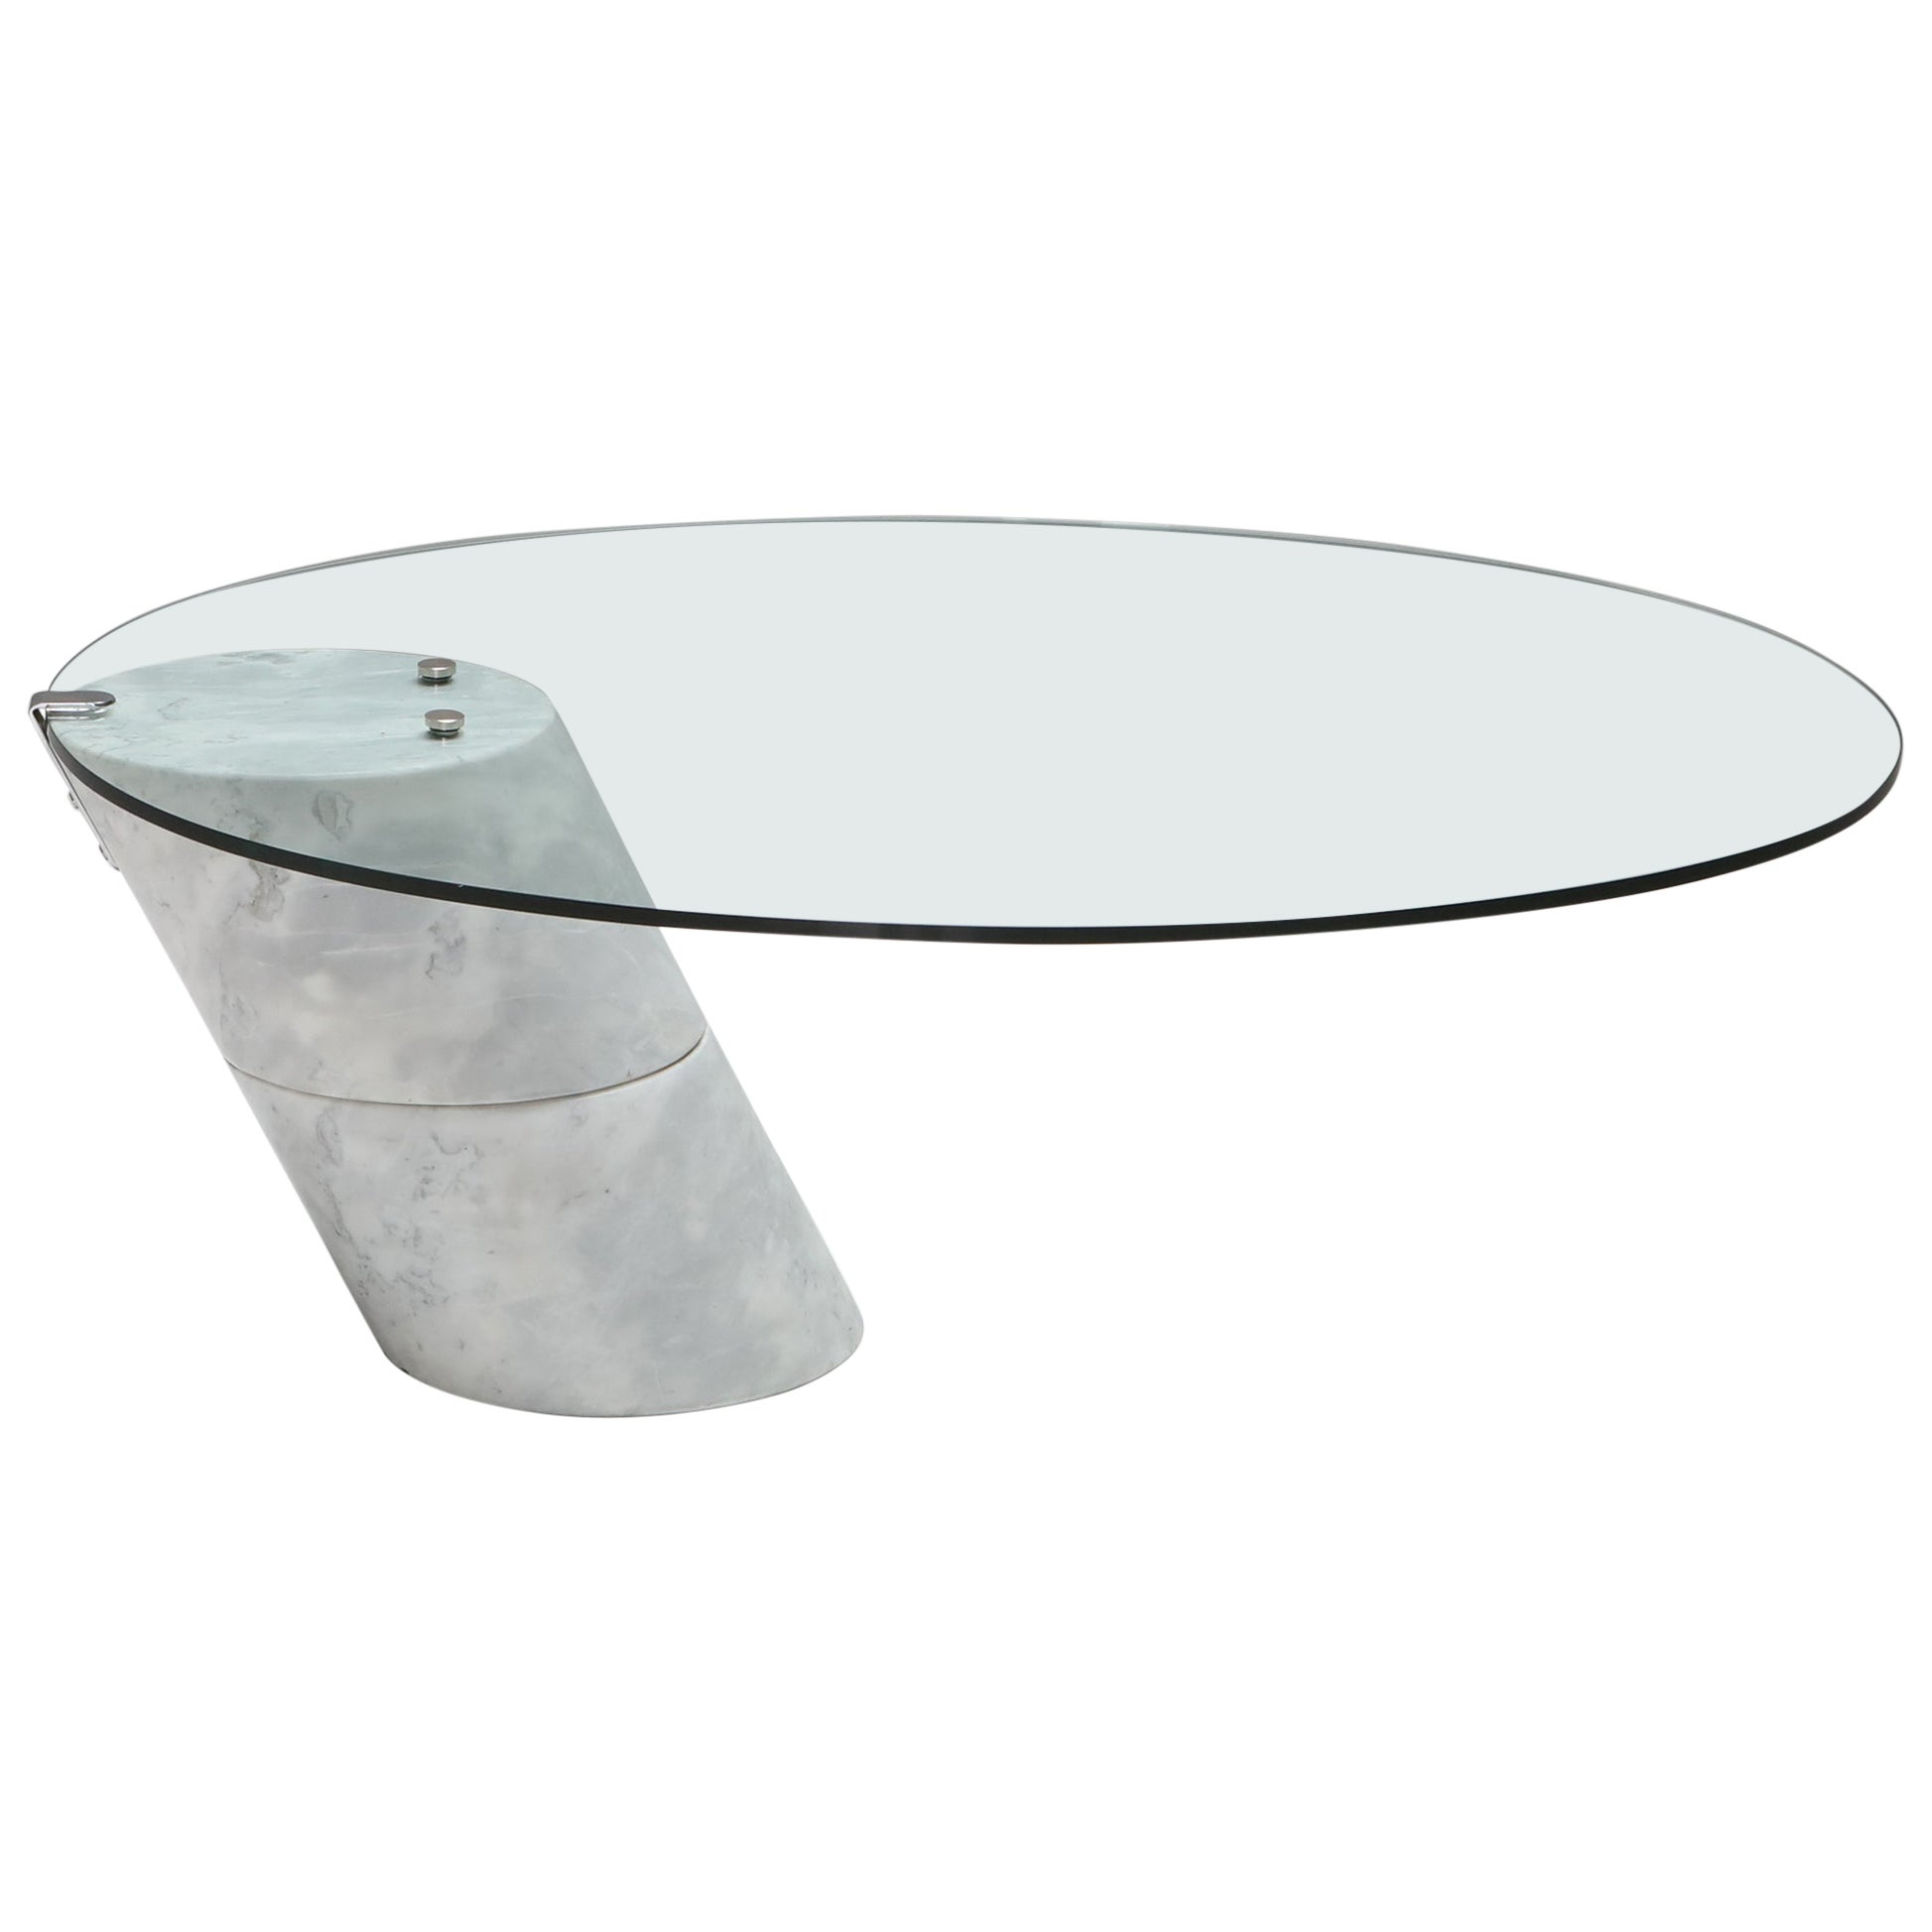 Postmodern Marble Coffee Table by Ronald Schmitt